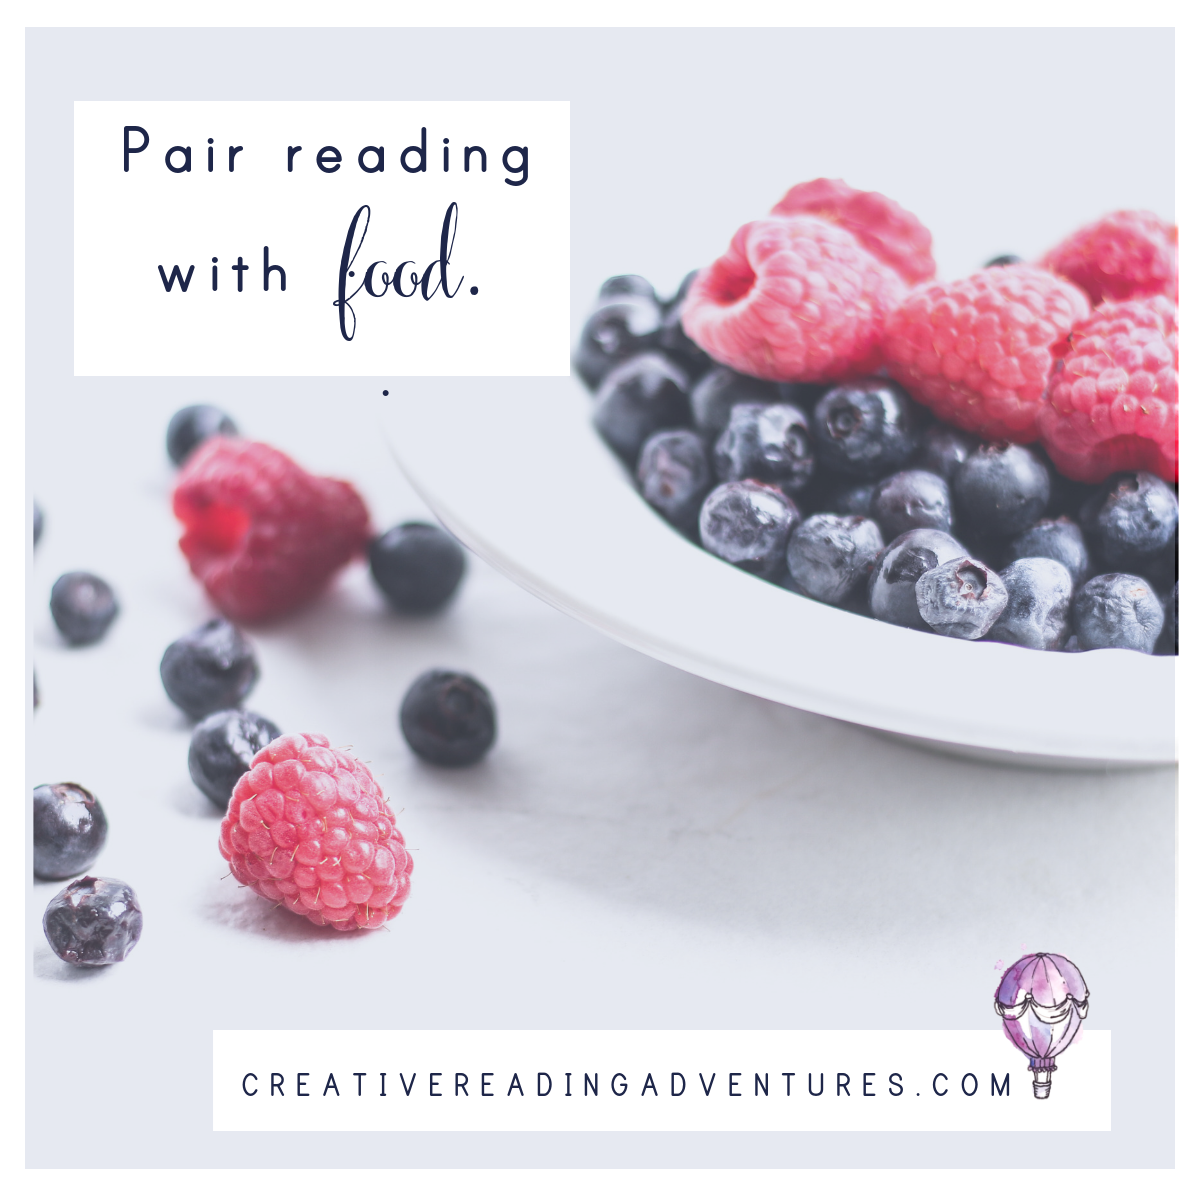 Pair reading with food